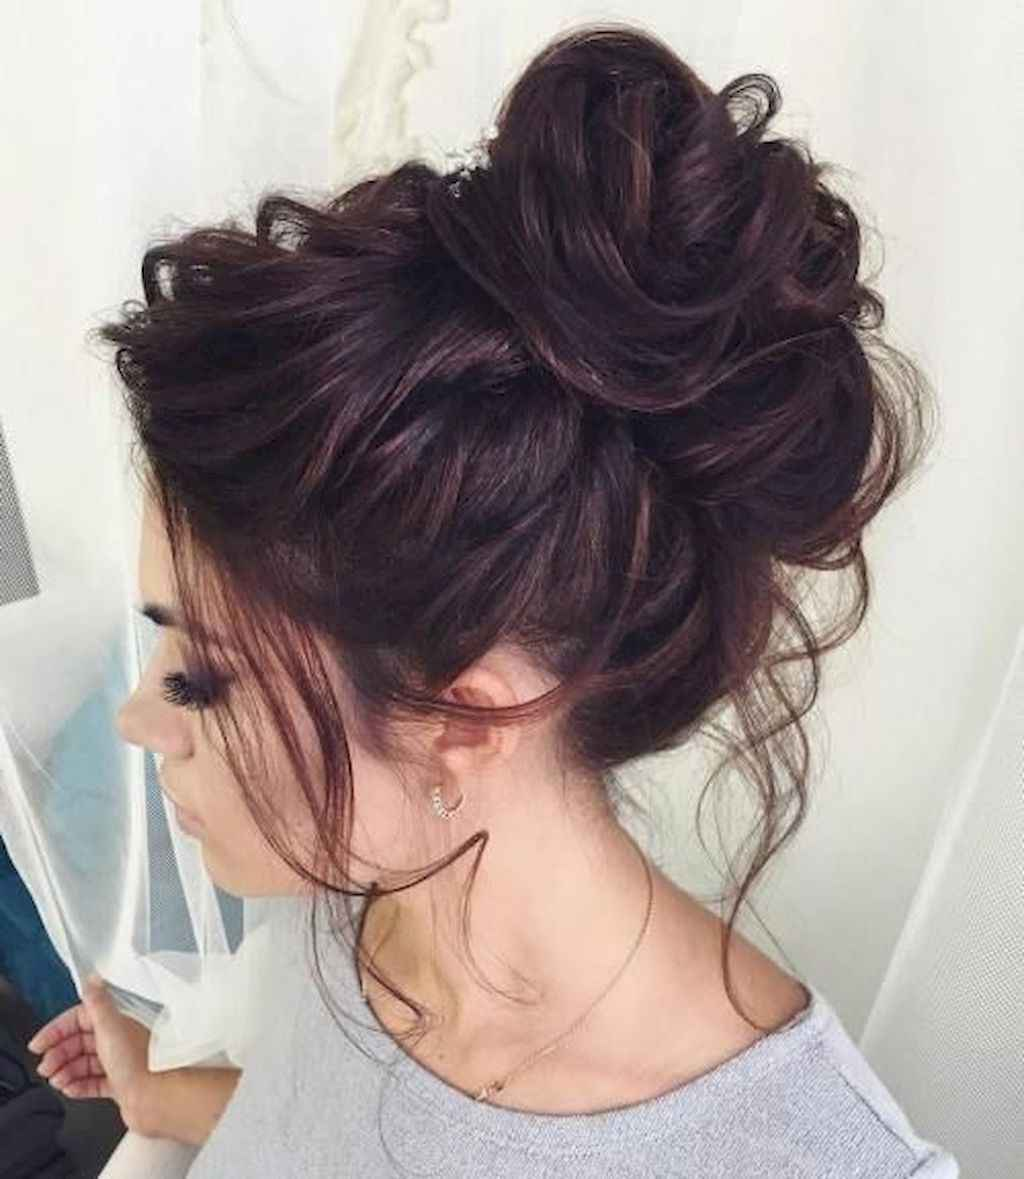 03 cute and easy messy bun hairstyle for summer - bellestilo